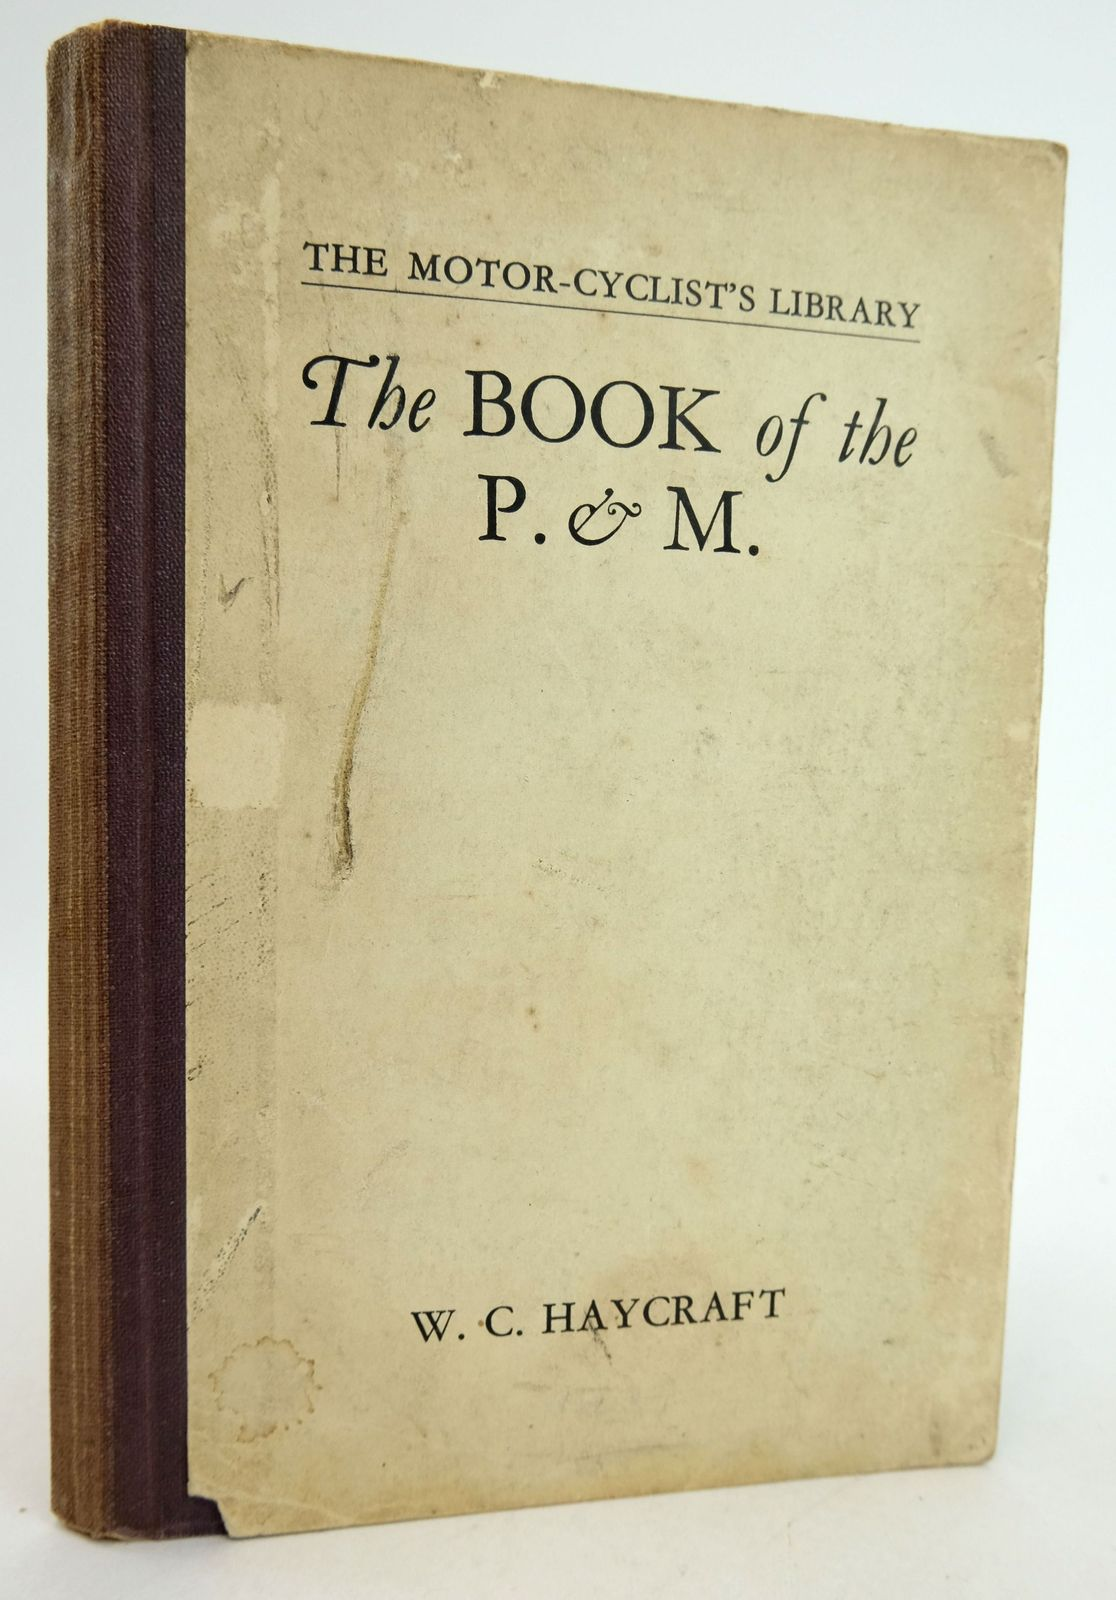 Photo of THE BOOK OF THE P. & M. (THE MOTOR-CYCLIST'S LIBRARY) written by Haycraft, W.C. published by Sir Isaac Pitman & Sons Ltd. (STOCK CODE: 1819455)  for sale by Stella & Rose's Books